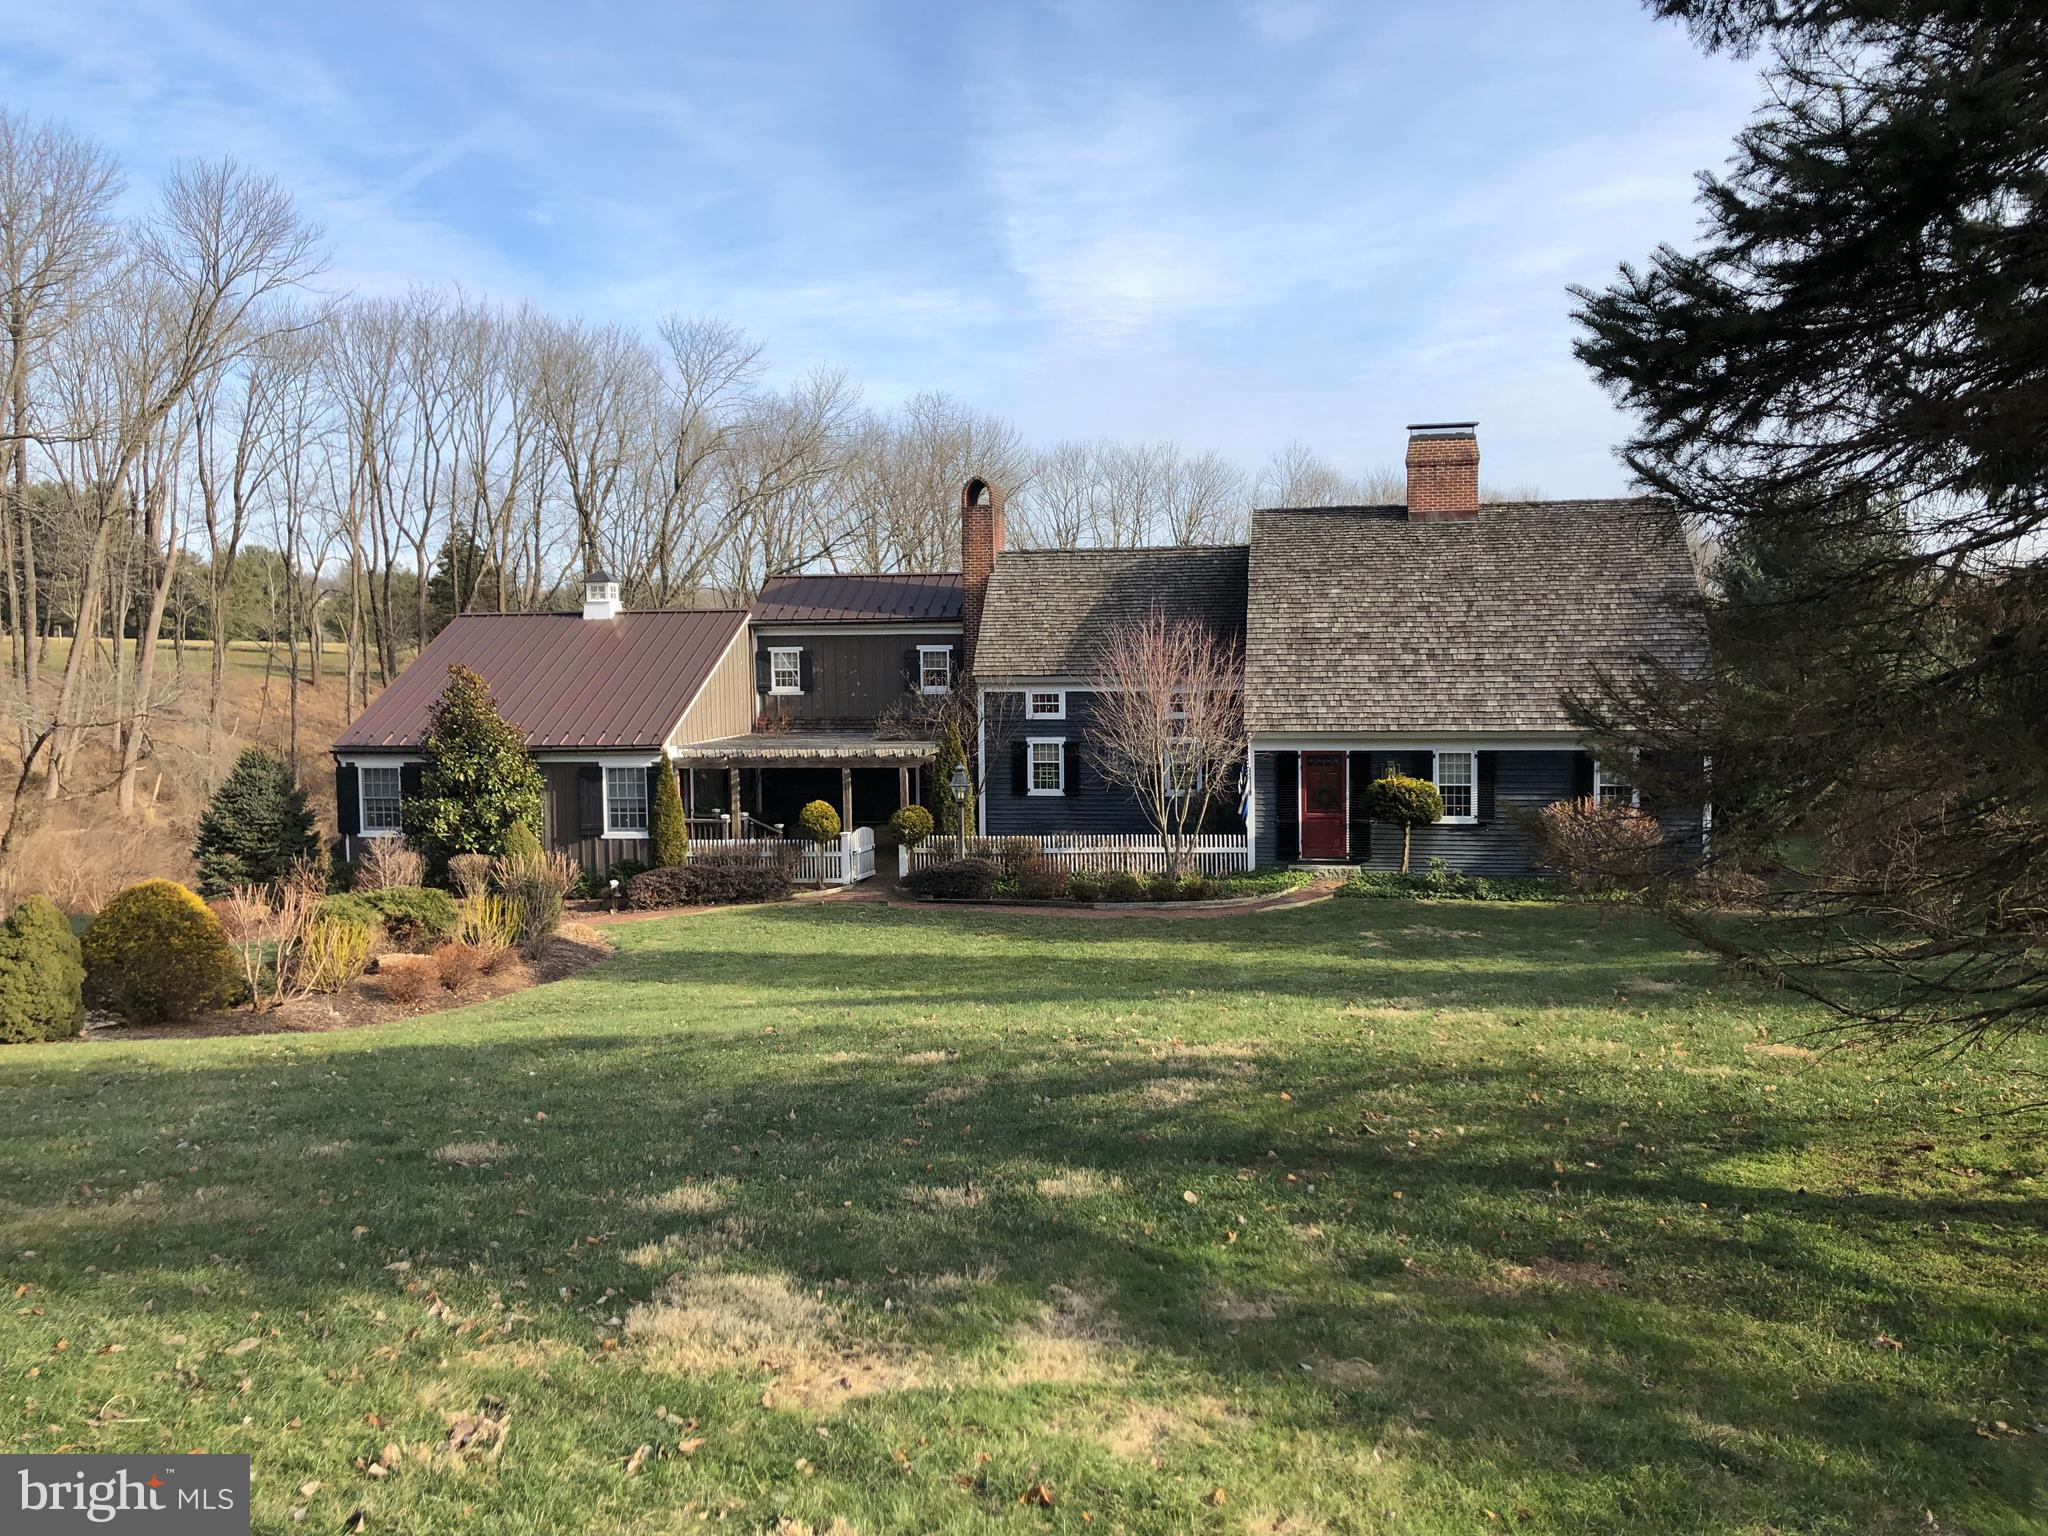 1249 PEBBLE HILL ROAD, DOYLESTOWN, PA 18901